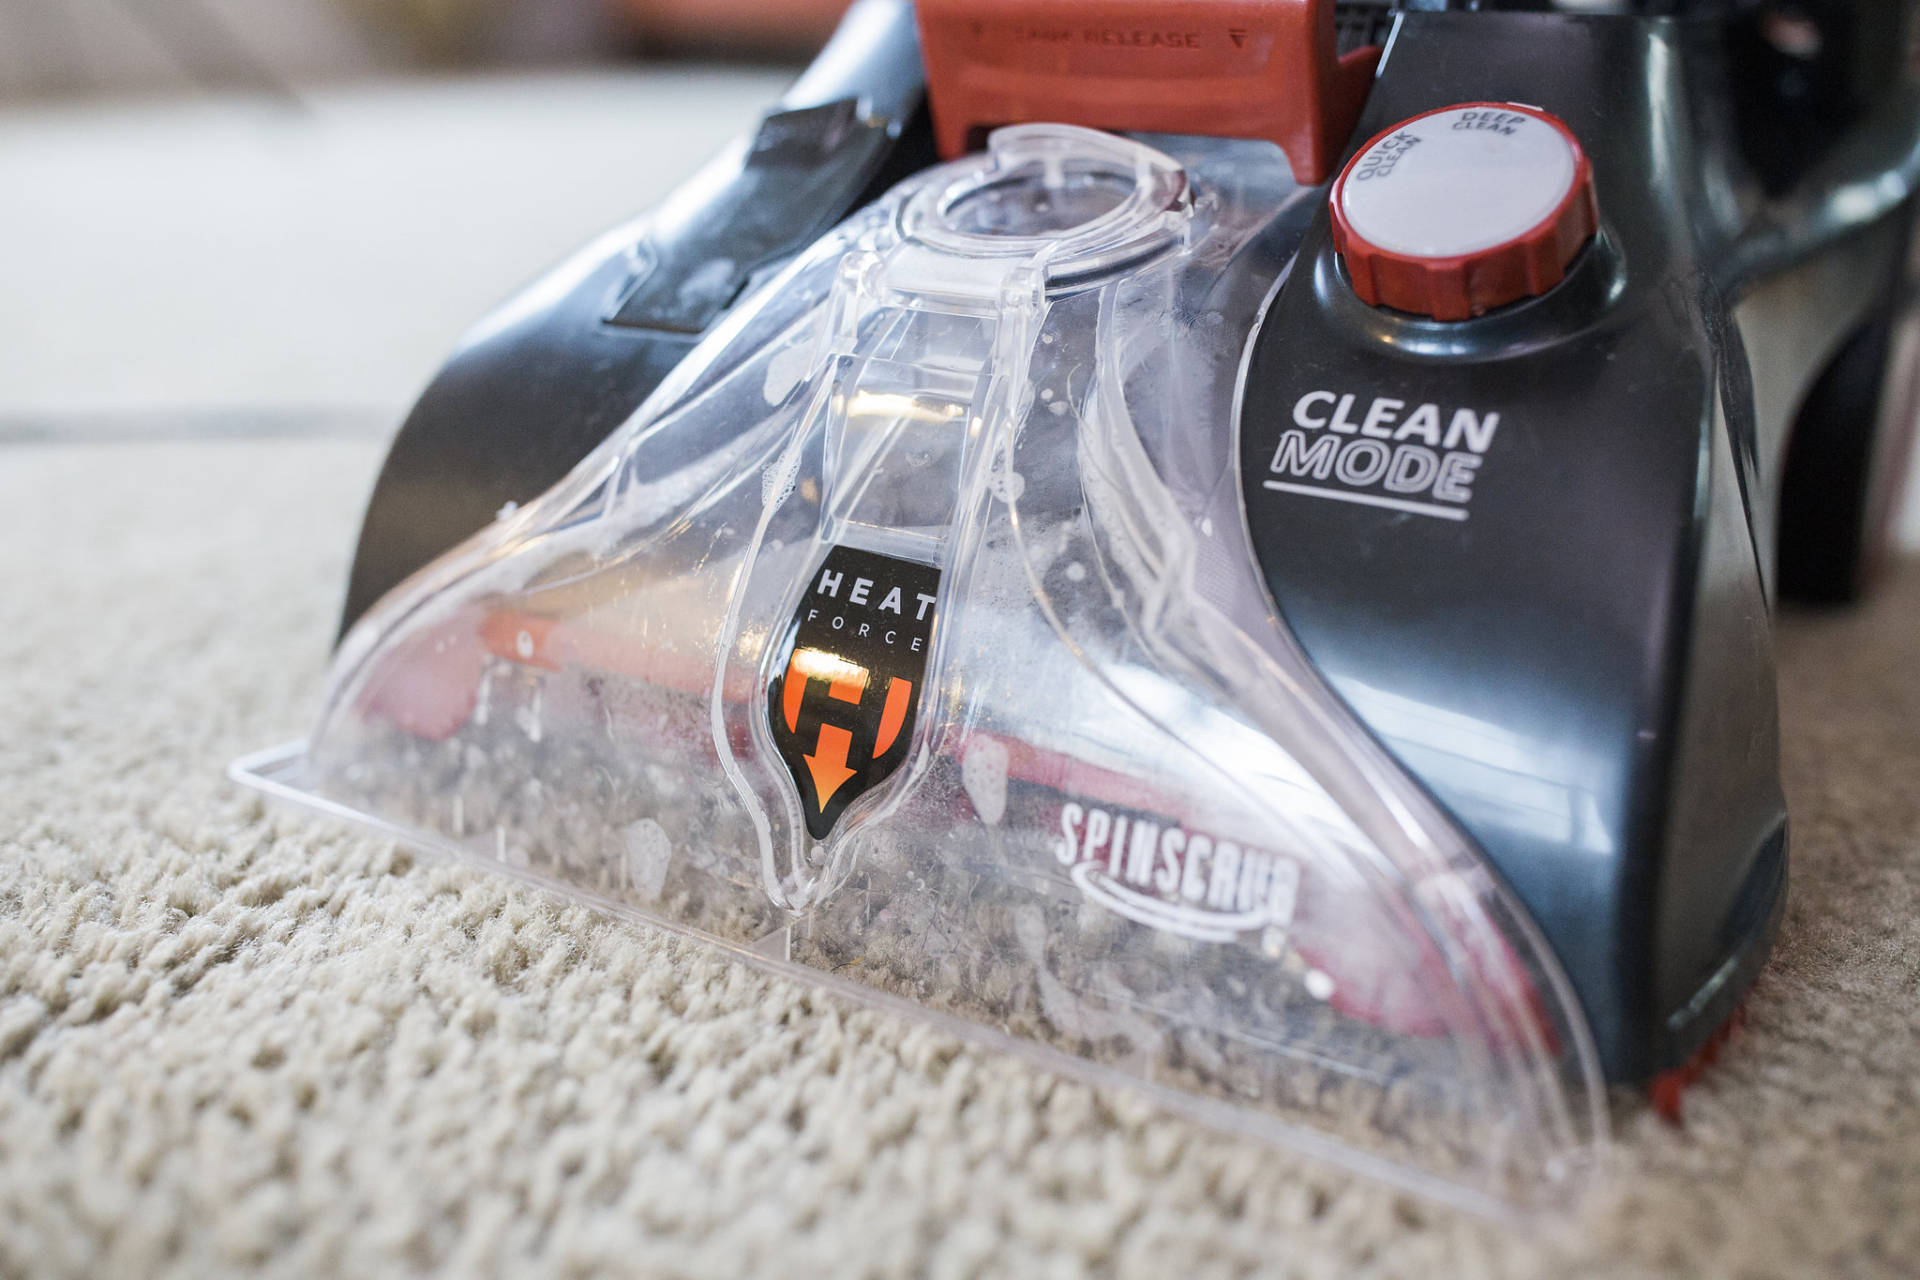 Wall to wall Carpet Cleaning With Power Scrub Elite Pet Plus by Home Depot! We love Charlie but he is messy! This has been the best deep cleaning carpet tool for us to date!